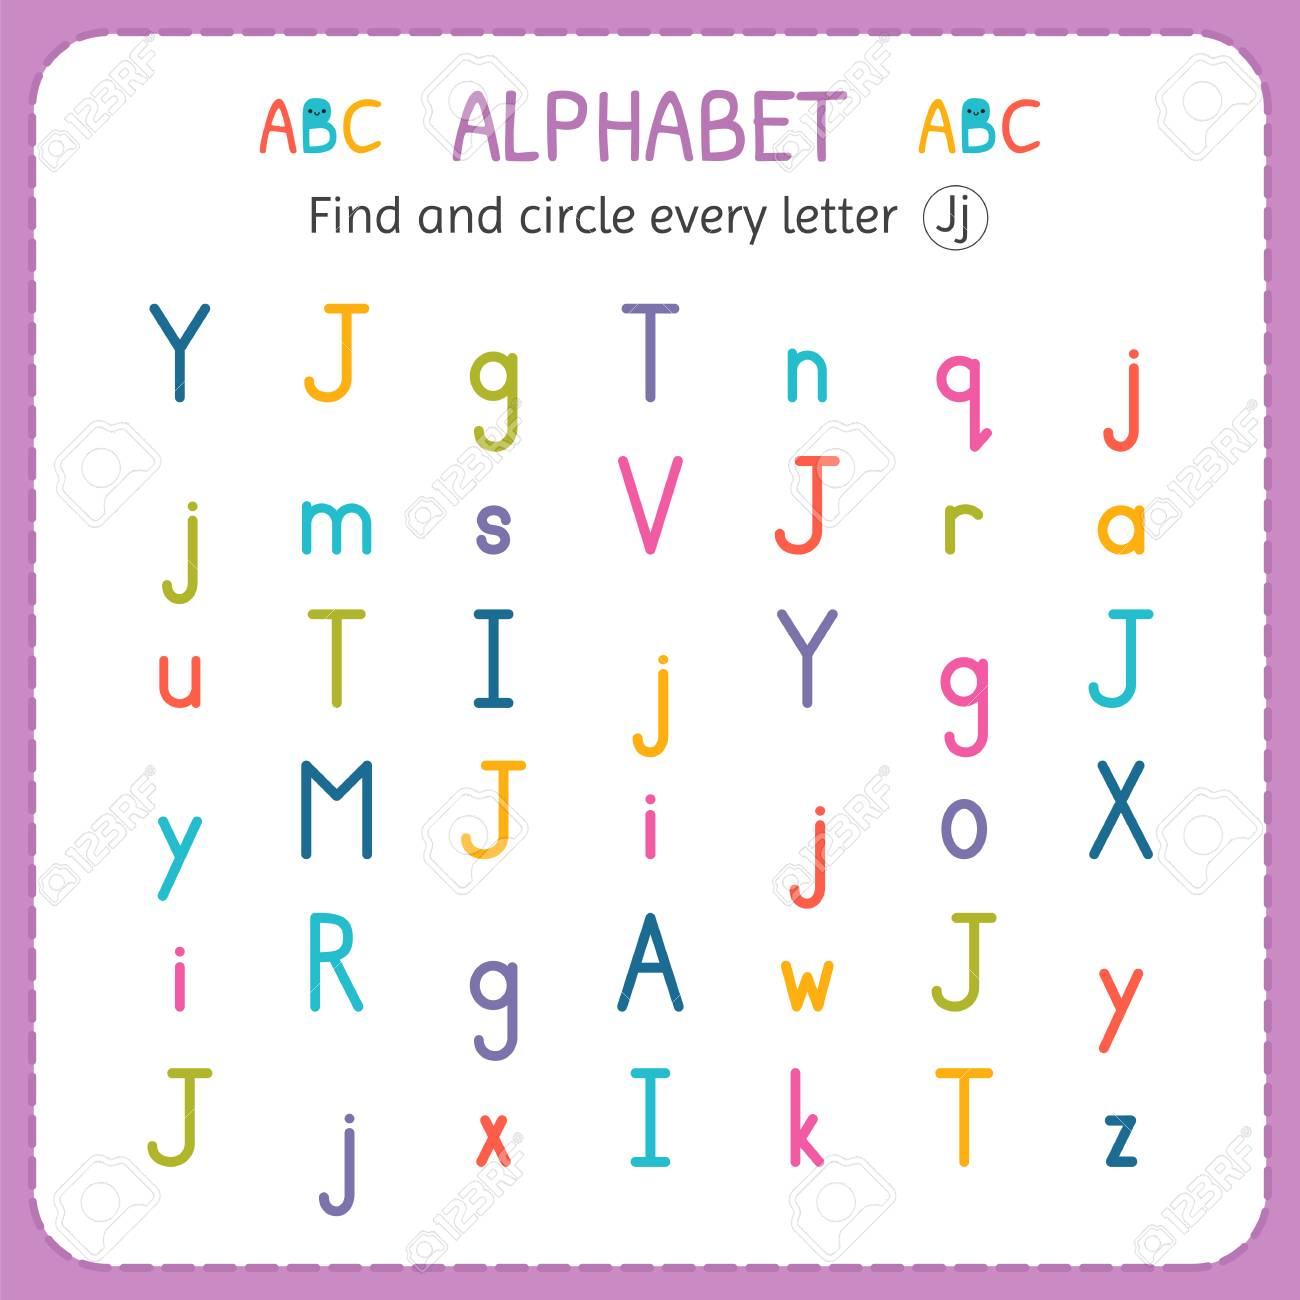 Find And Circle Every Letter J Worksheet For Kindergarten And  Find And Circle Every Letter J Worksheet For Kindergarten And Preschool  Exercises For Children